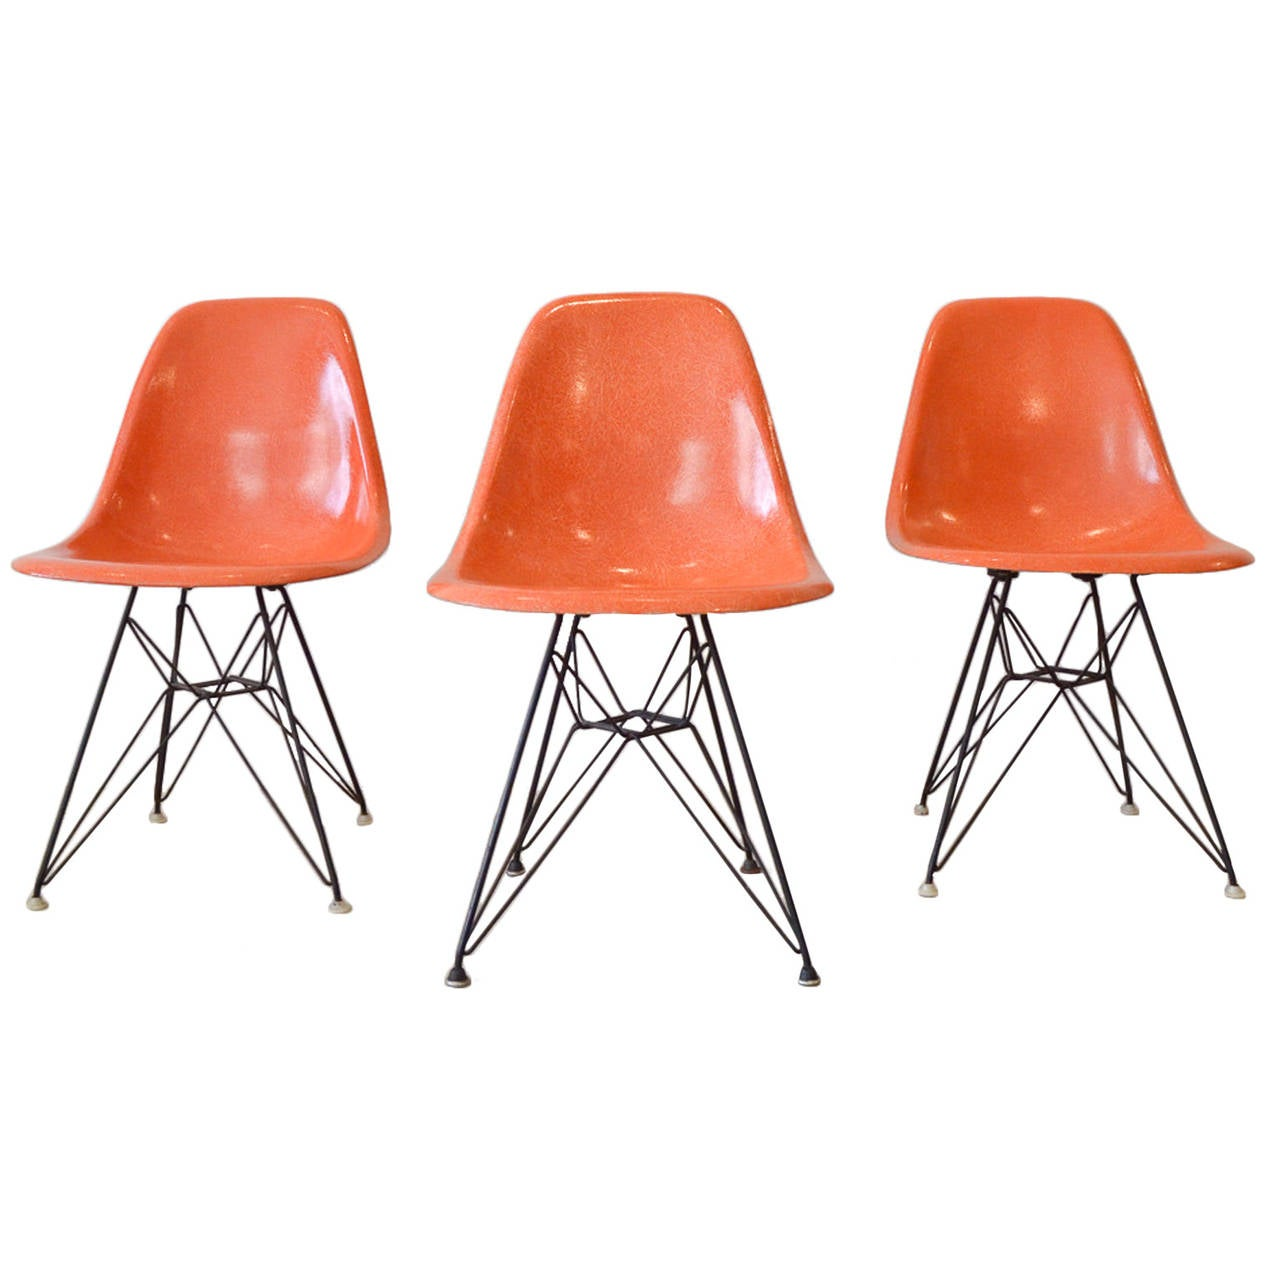 this eames dsr fiberglass chair with wire base is no longer available